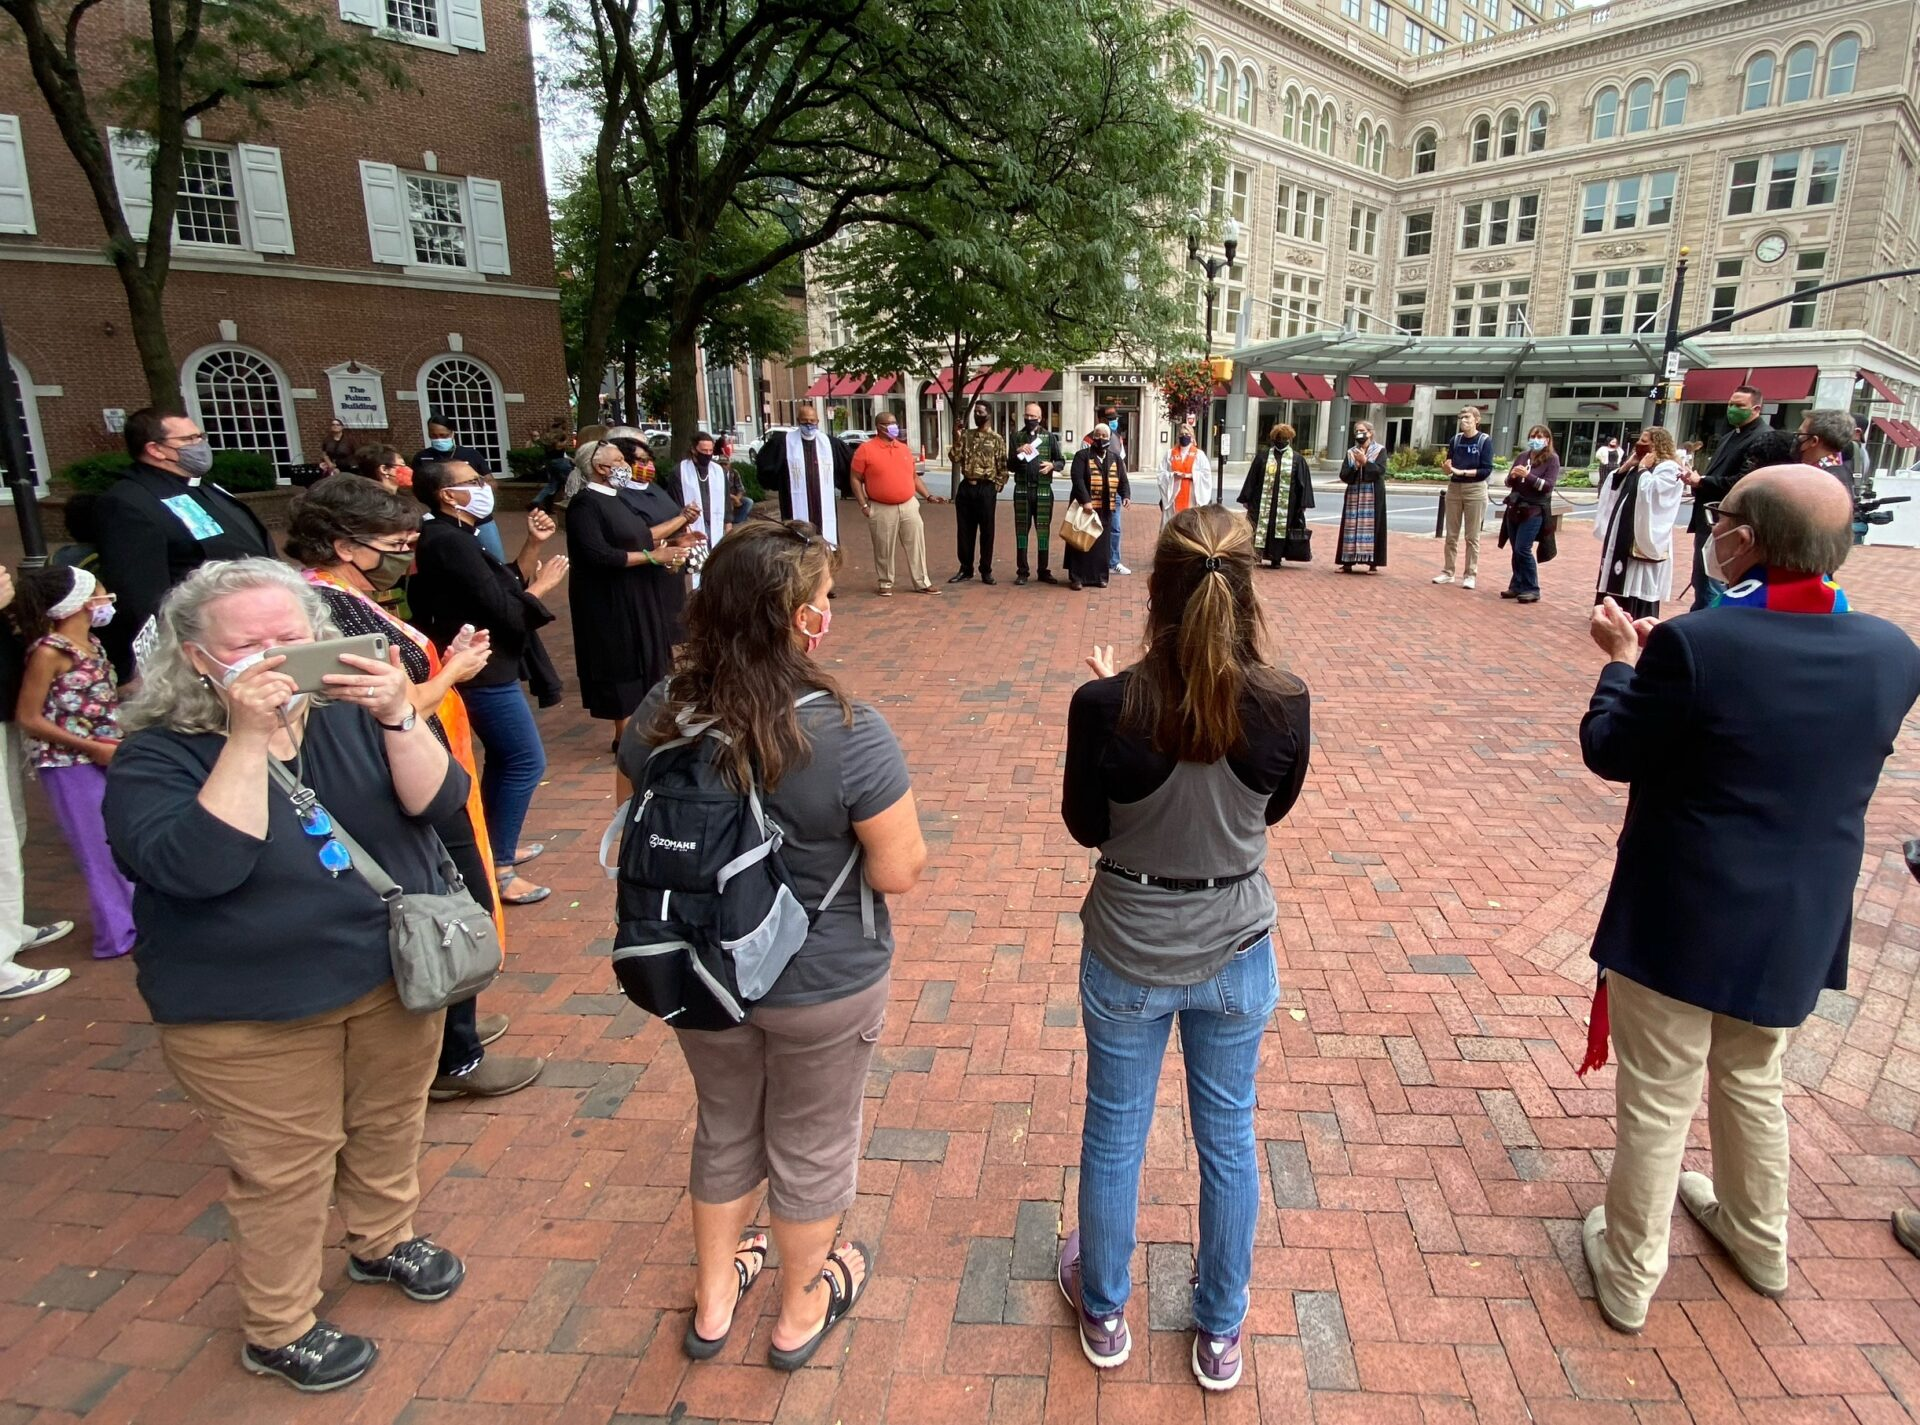 Participants form a circle in Penn Square outside Fulton Bank during a protest organized by POWER Interfaith Lancaster County on Thursday, Sept. 17, 2020. (Photo: Audrey Lilley)